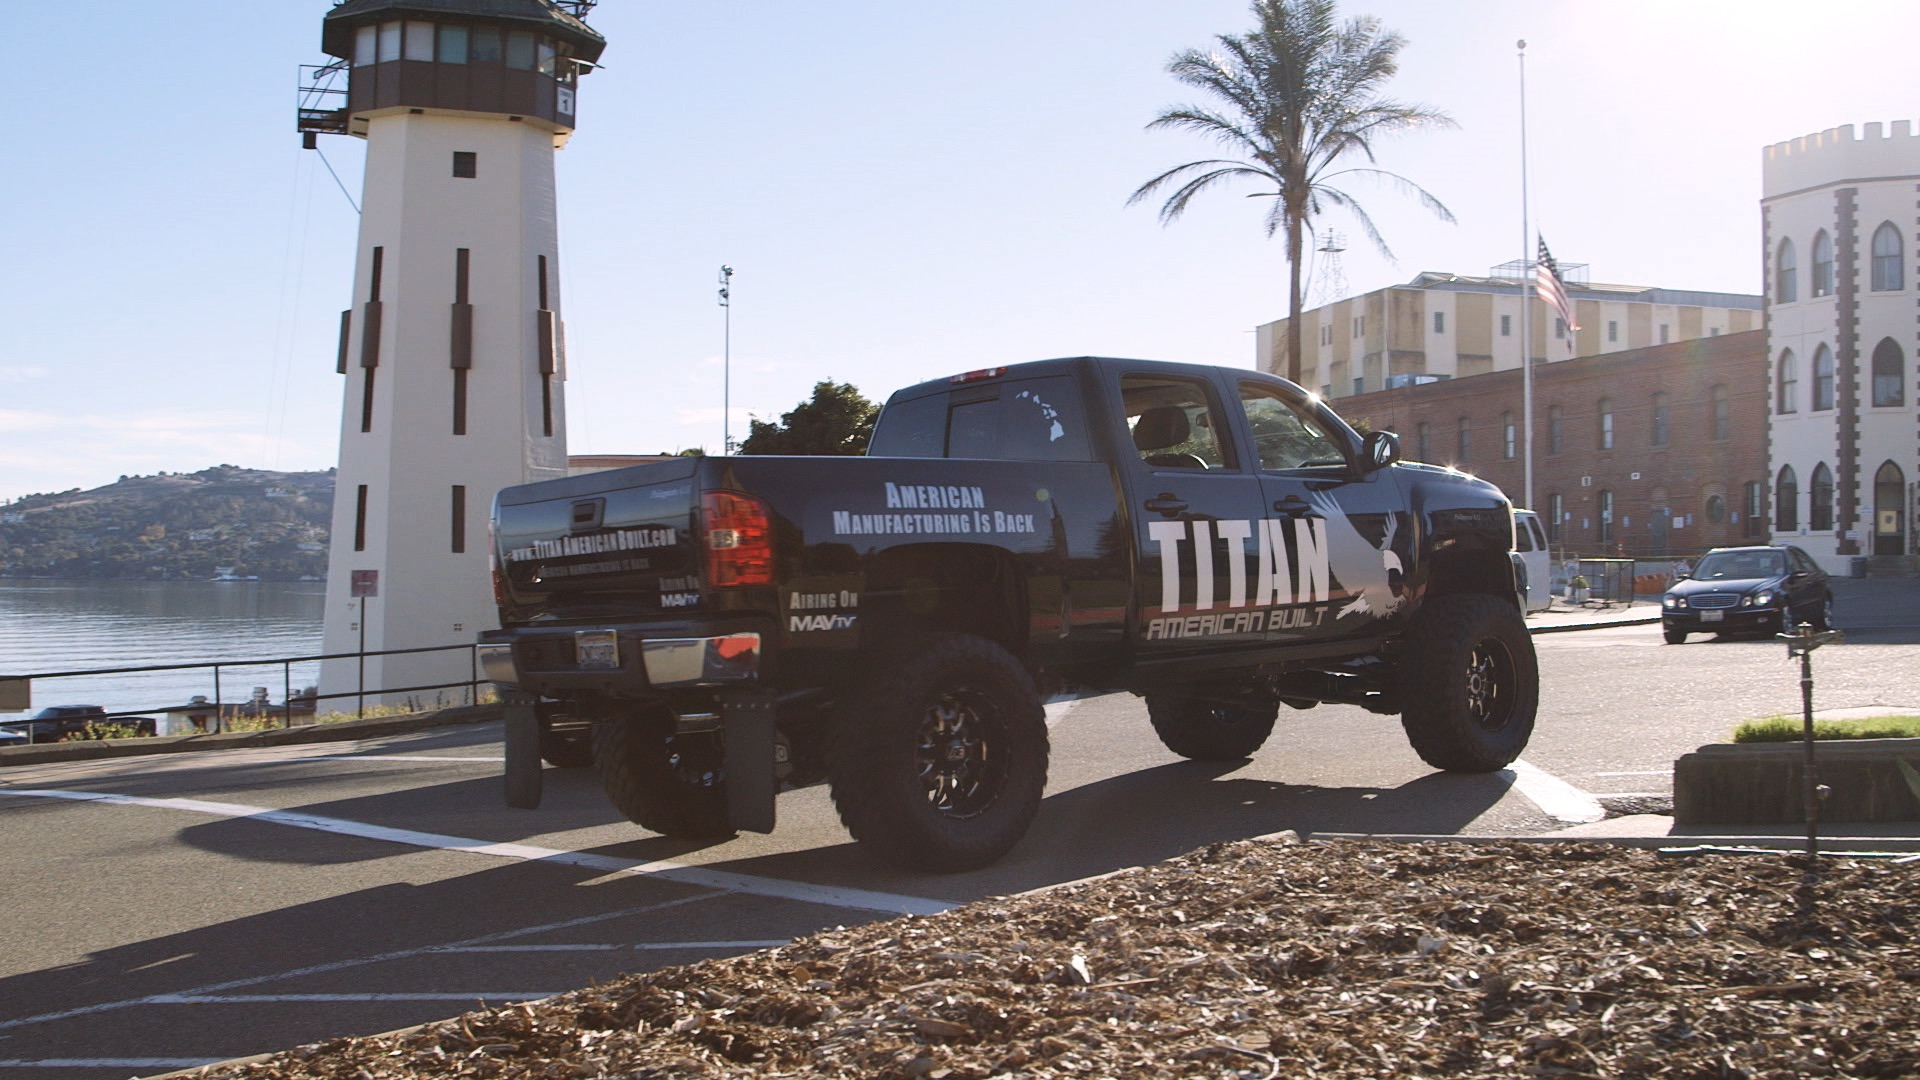 Titan goes back behind bars bringing hope to the inmates of San Quentin Prison and to the builders across the nation.